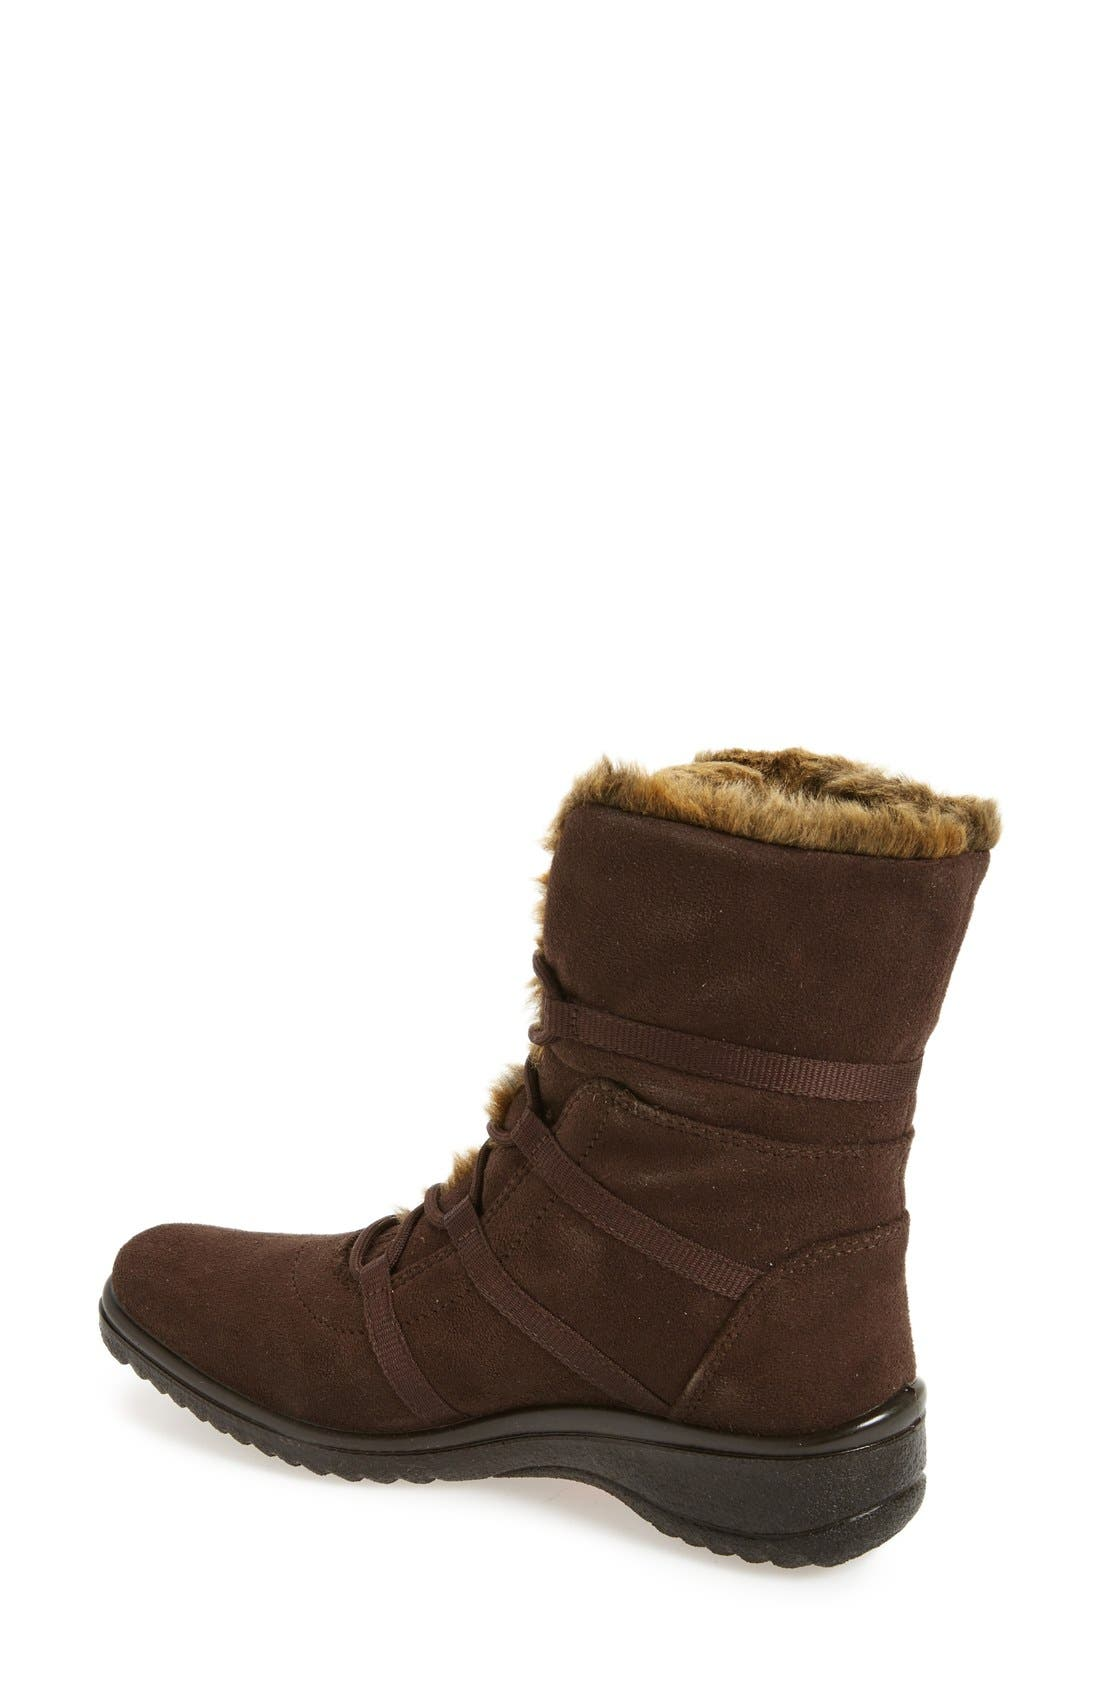 'Magaly' Waterproof Gore-Tex<sup>®</sup> Faux Fur Boot,                             Alternate thumbnail 2, color,                             Brown Fabric